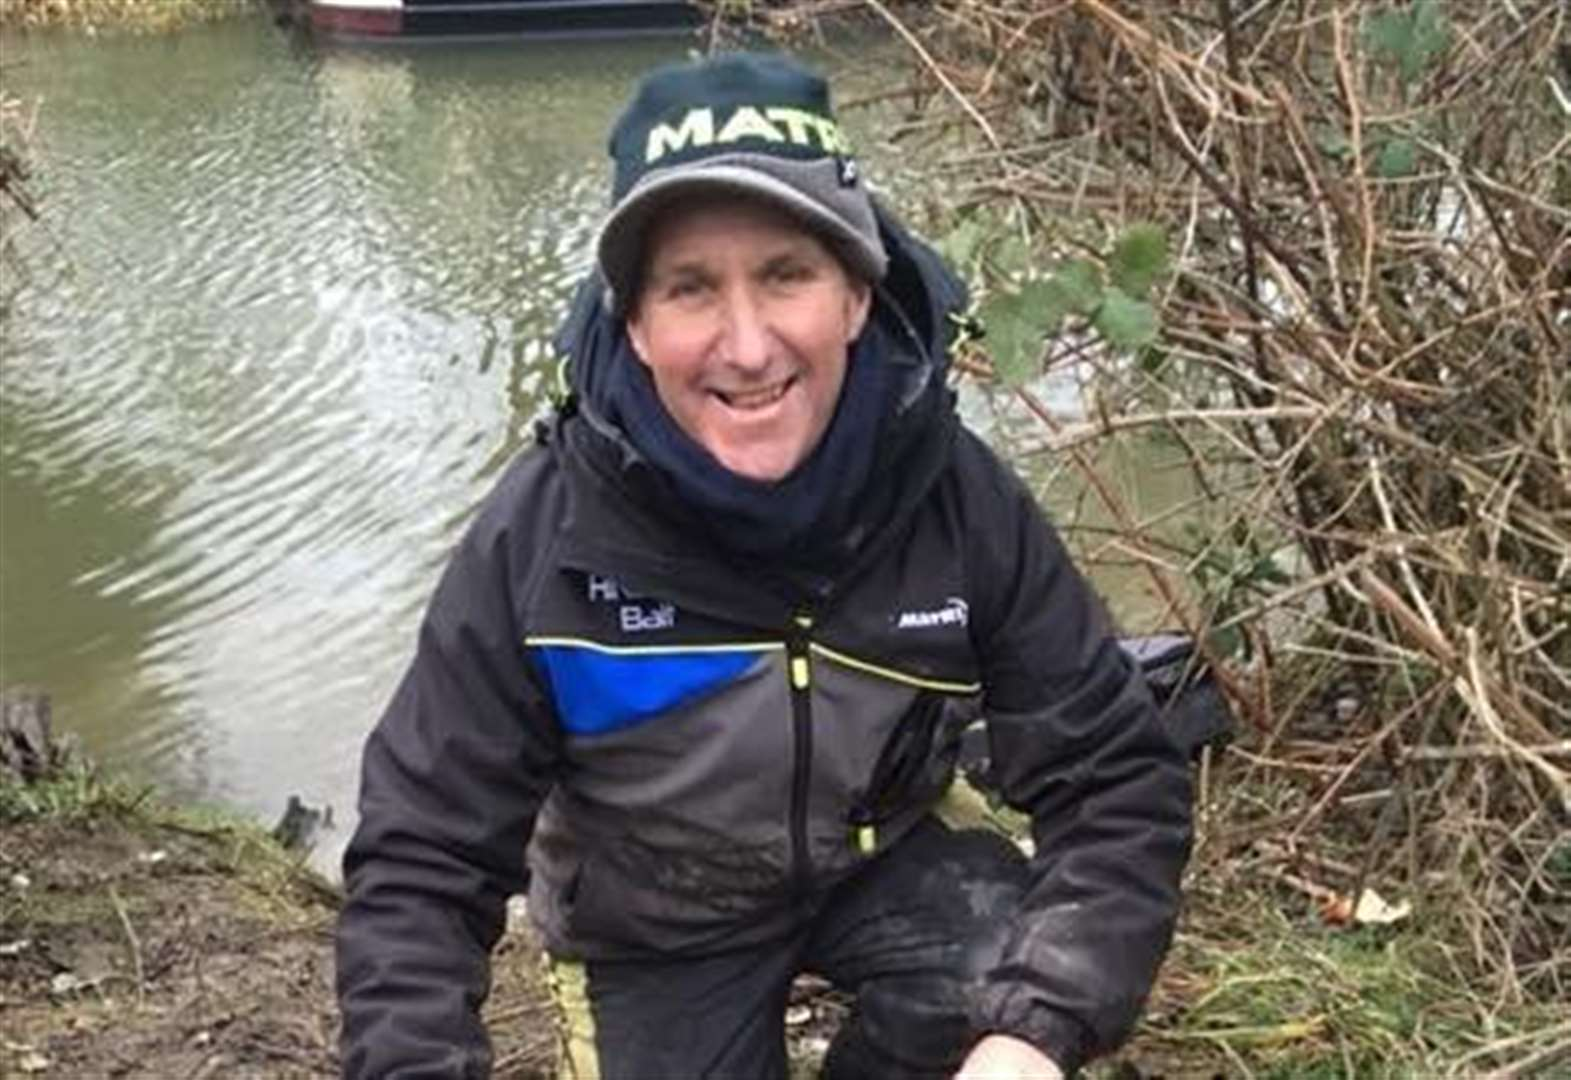 Angling: big March Open sees Pollard ensure practice makes perfect before Winter League final on venue this weekend